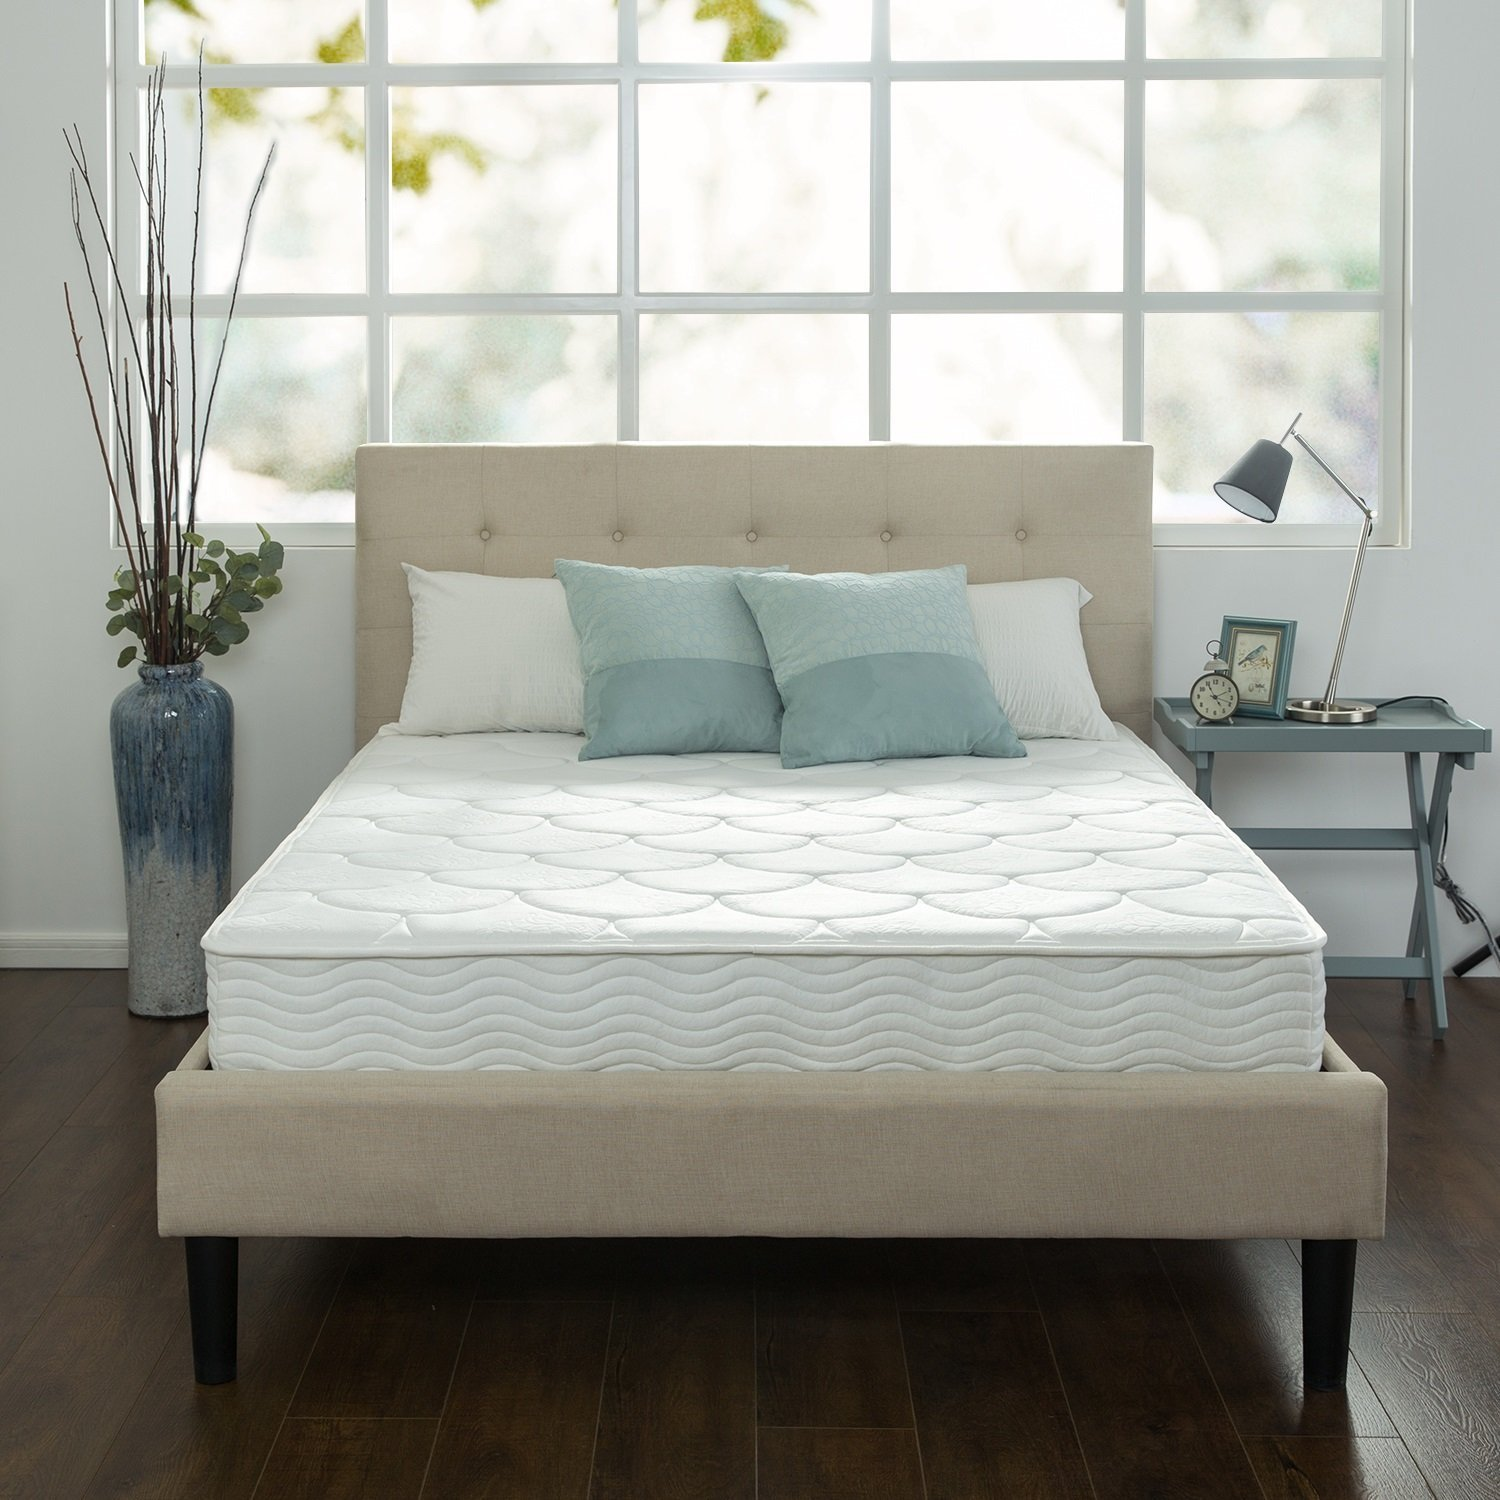 Zinus ultima spring mattress- Innerspring mattress